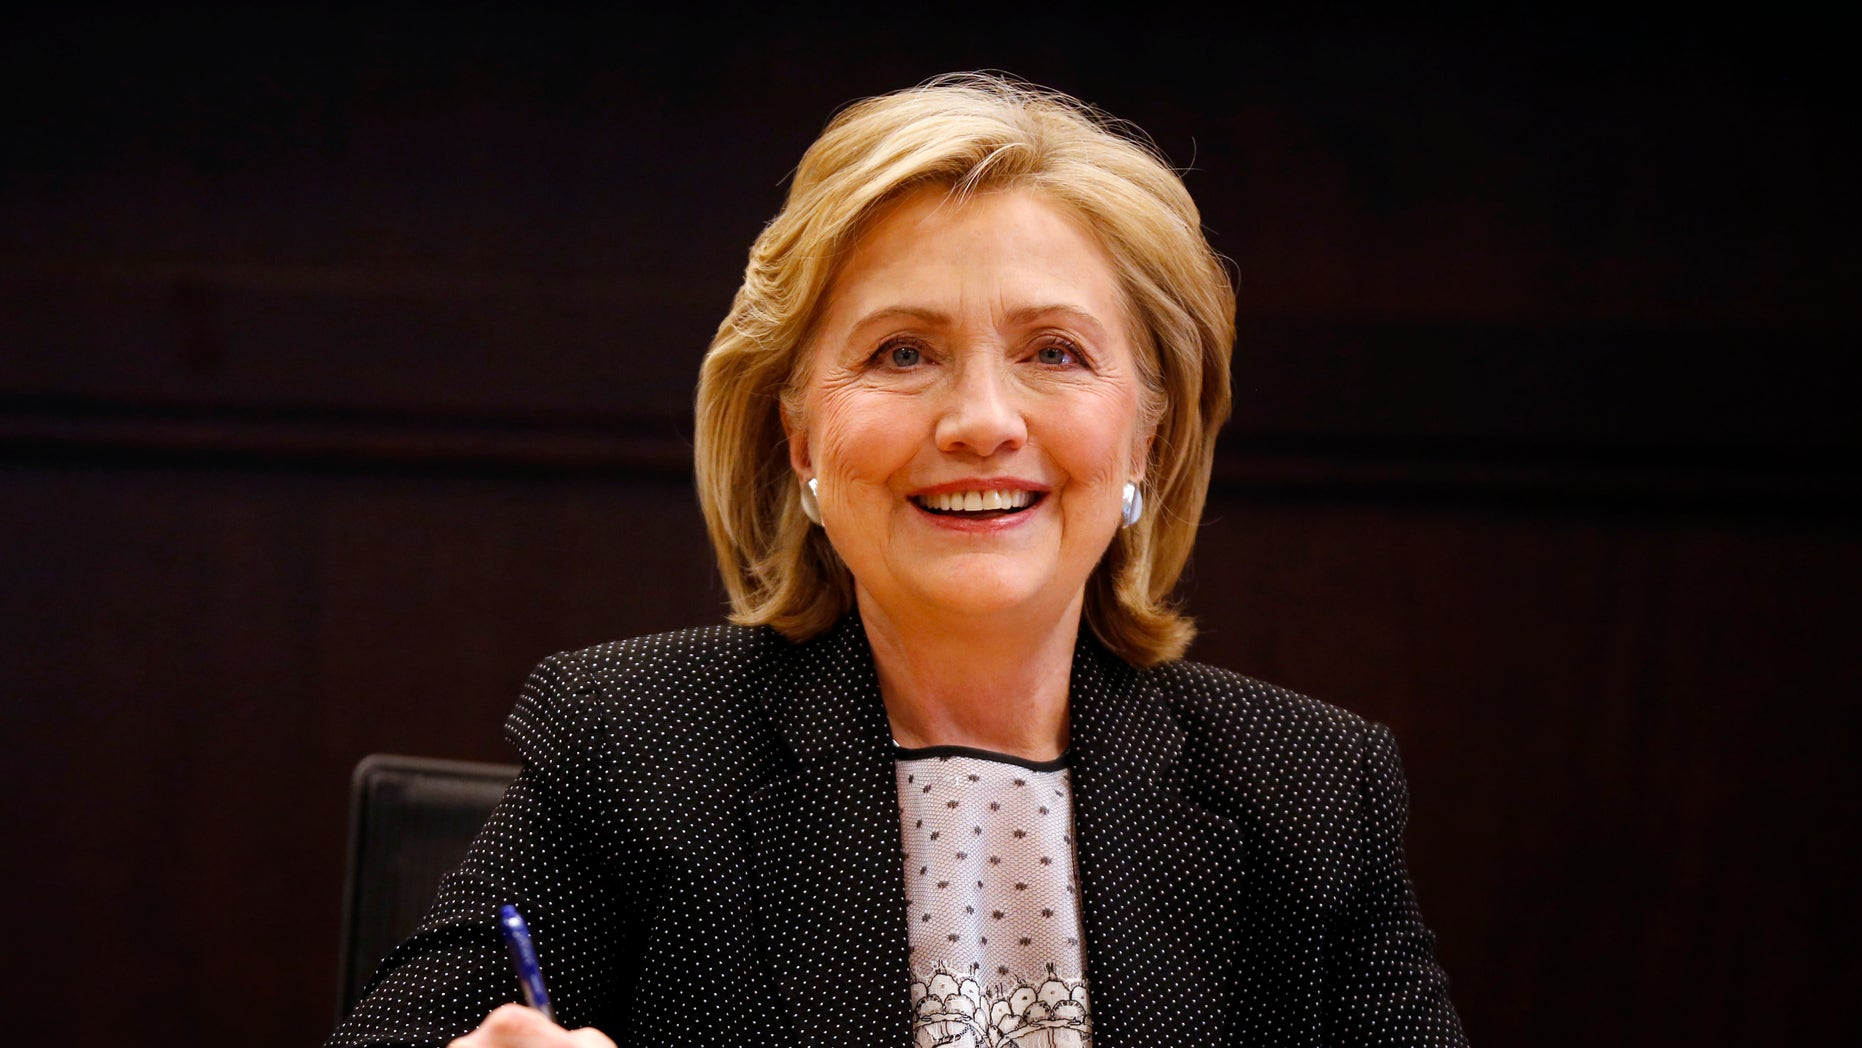 """Former U.S. Secretary of State Hillary Clinton signs copies of her book """"Hard Choices"""" at a Barnes & Noble book store in Los Angeles, California June 19, 2014.  REUTERS/Lucy Nicholson    (UNITED STATES - Tags: POLITICS MEDIA) - RTR3UQNK"""